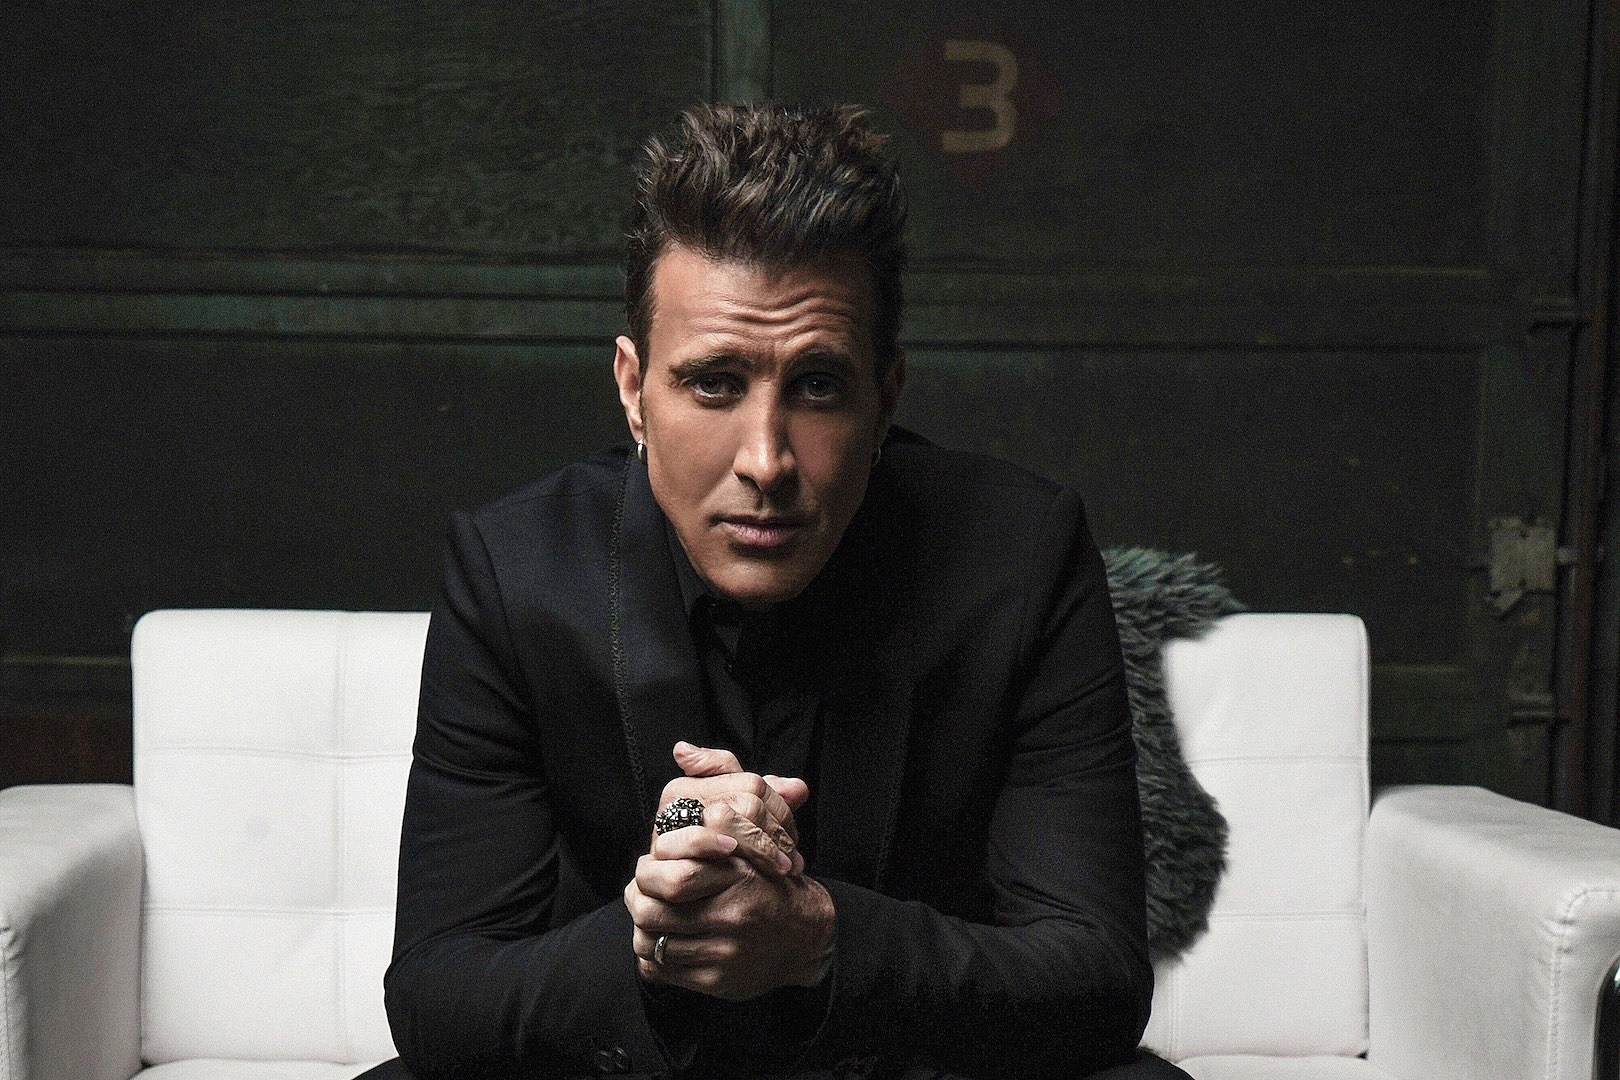 Scott Stapp Reveals Deeply Personal New Song 'Name' + New Album Details